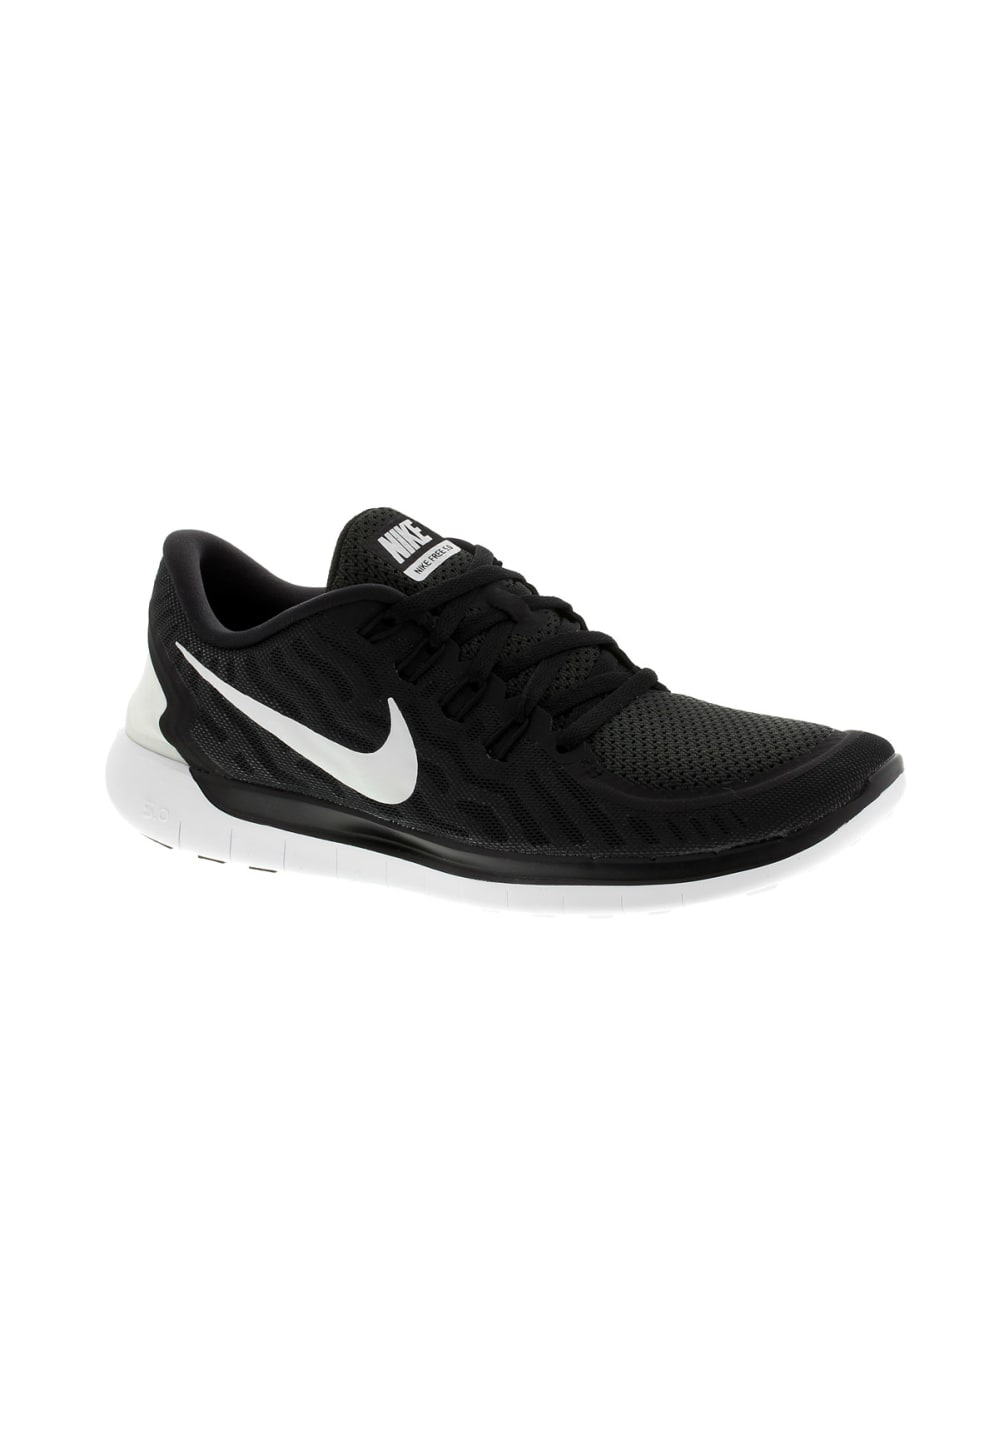 bas prix e75de 40f79 Nike Free 5.0 - Running shoes for Women - Black